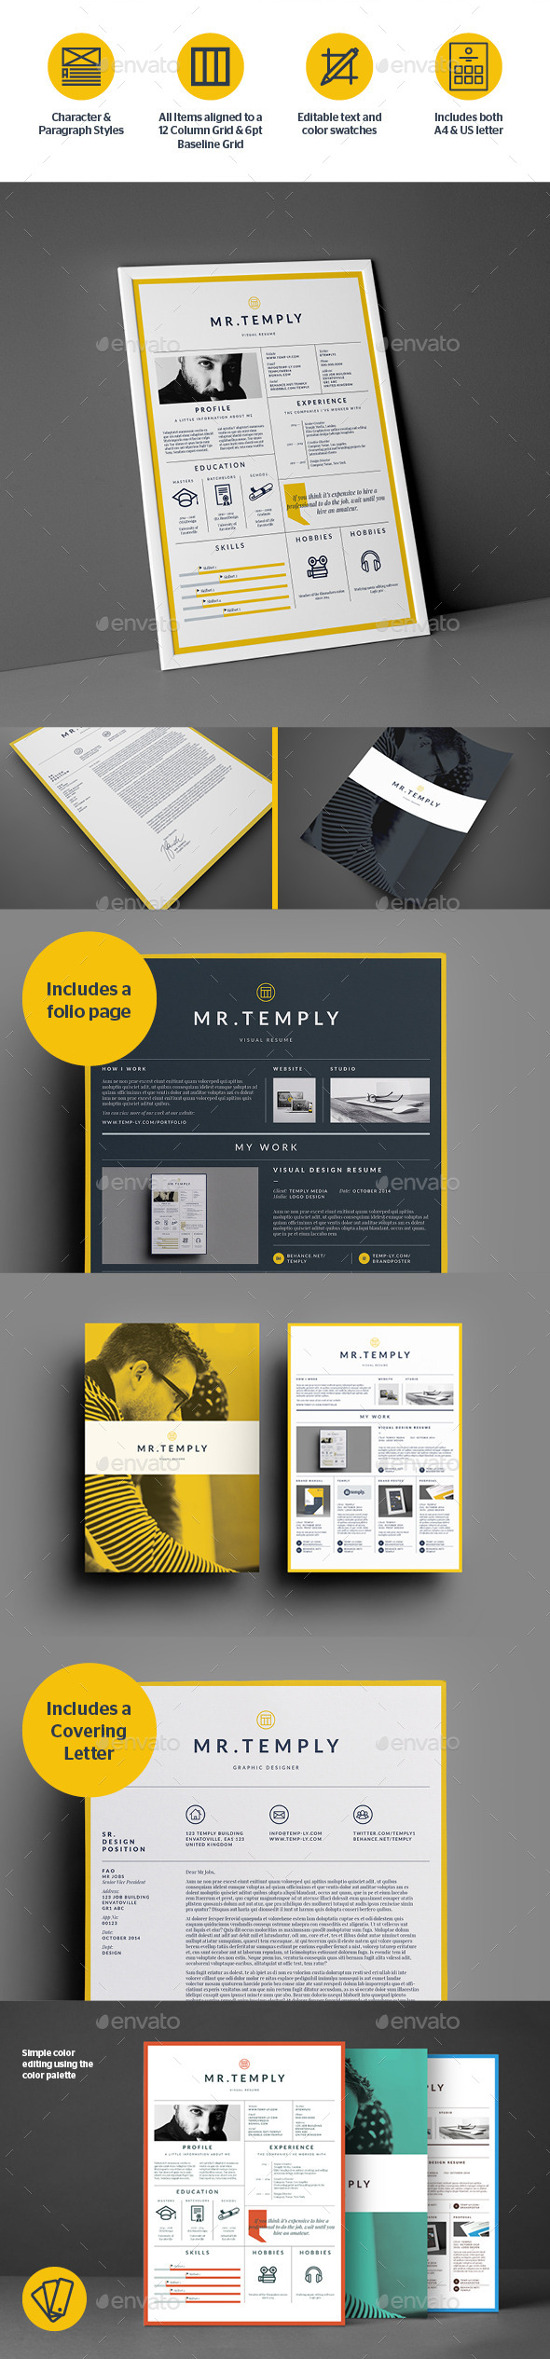 Visual Resume By Temp Ly. Infographic Resume Templates